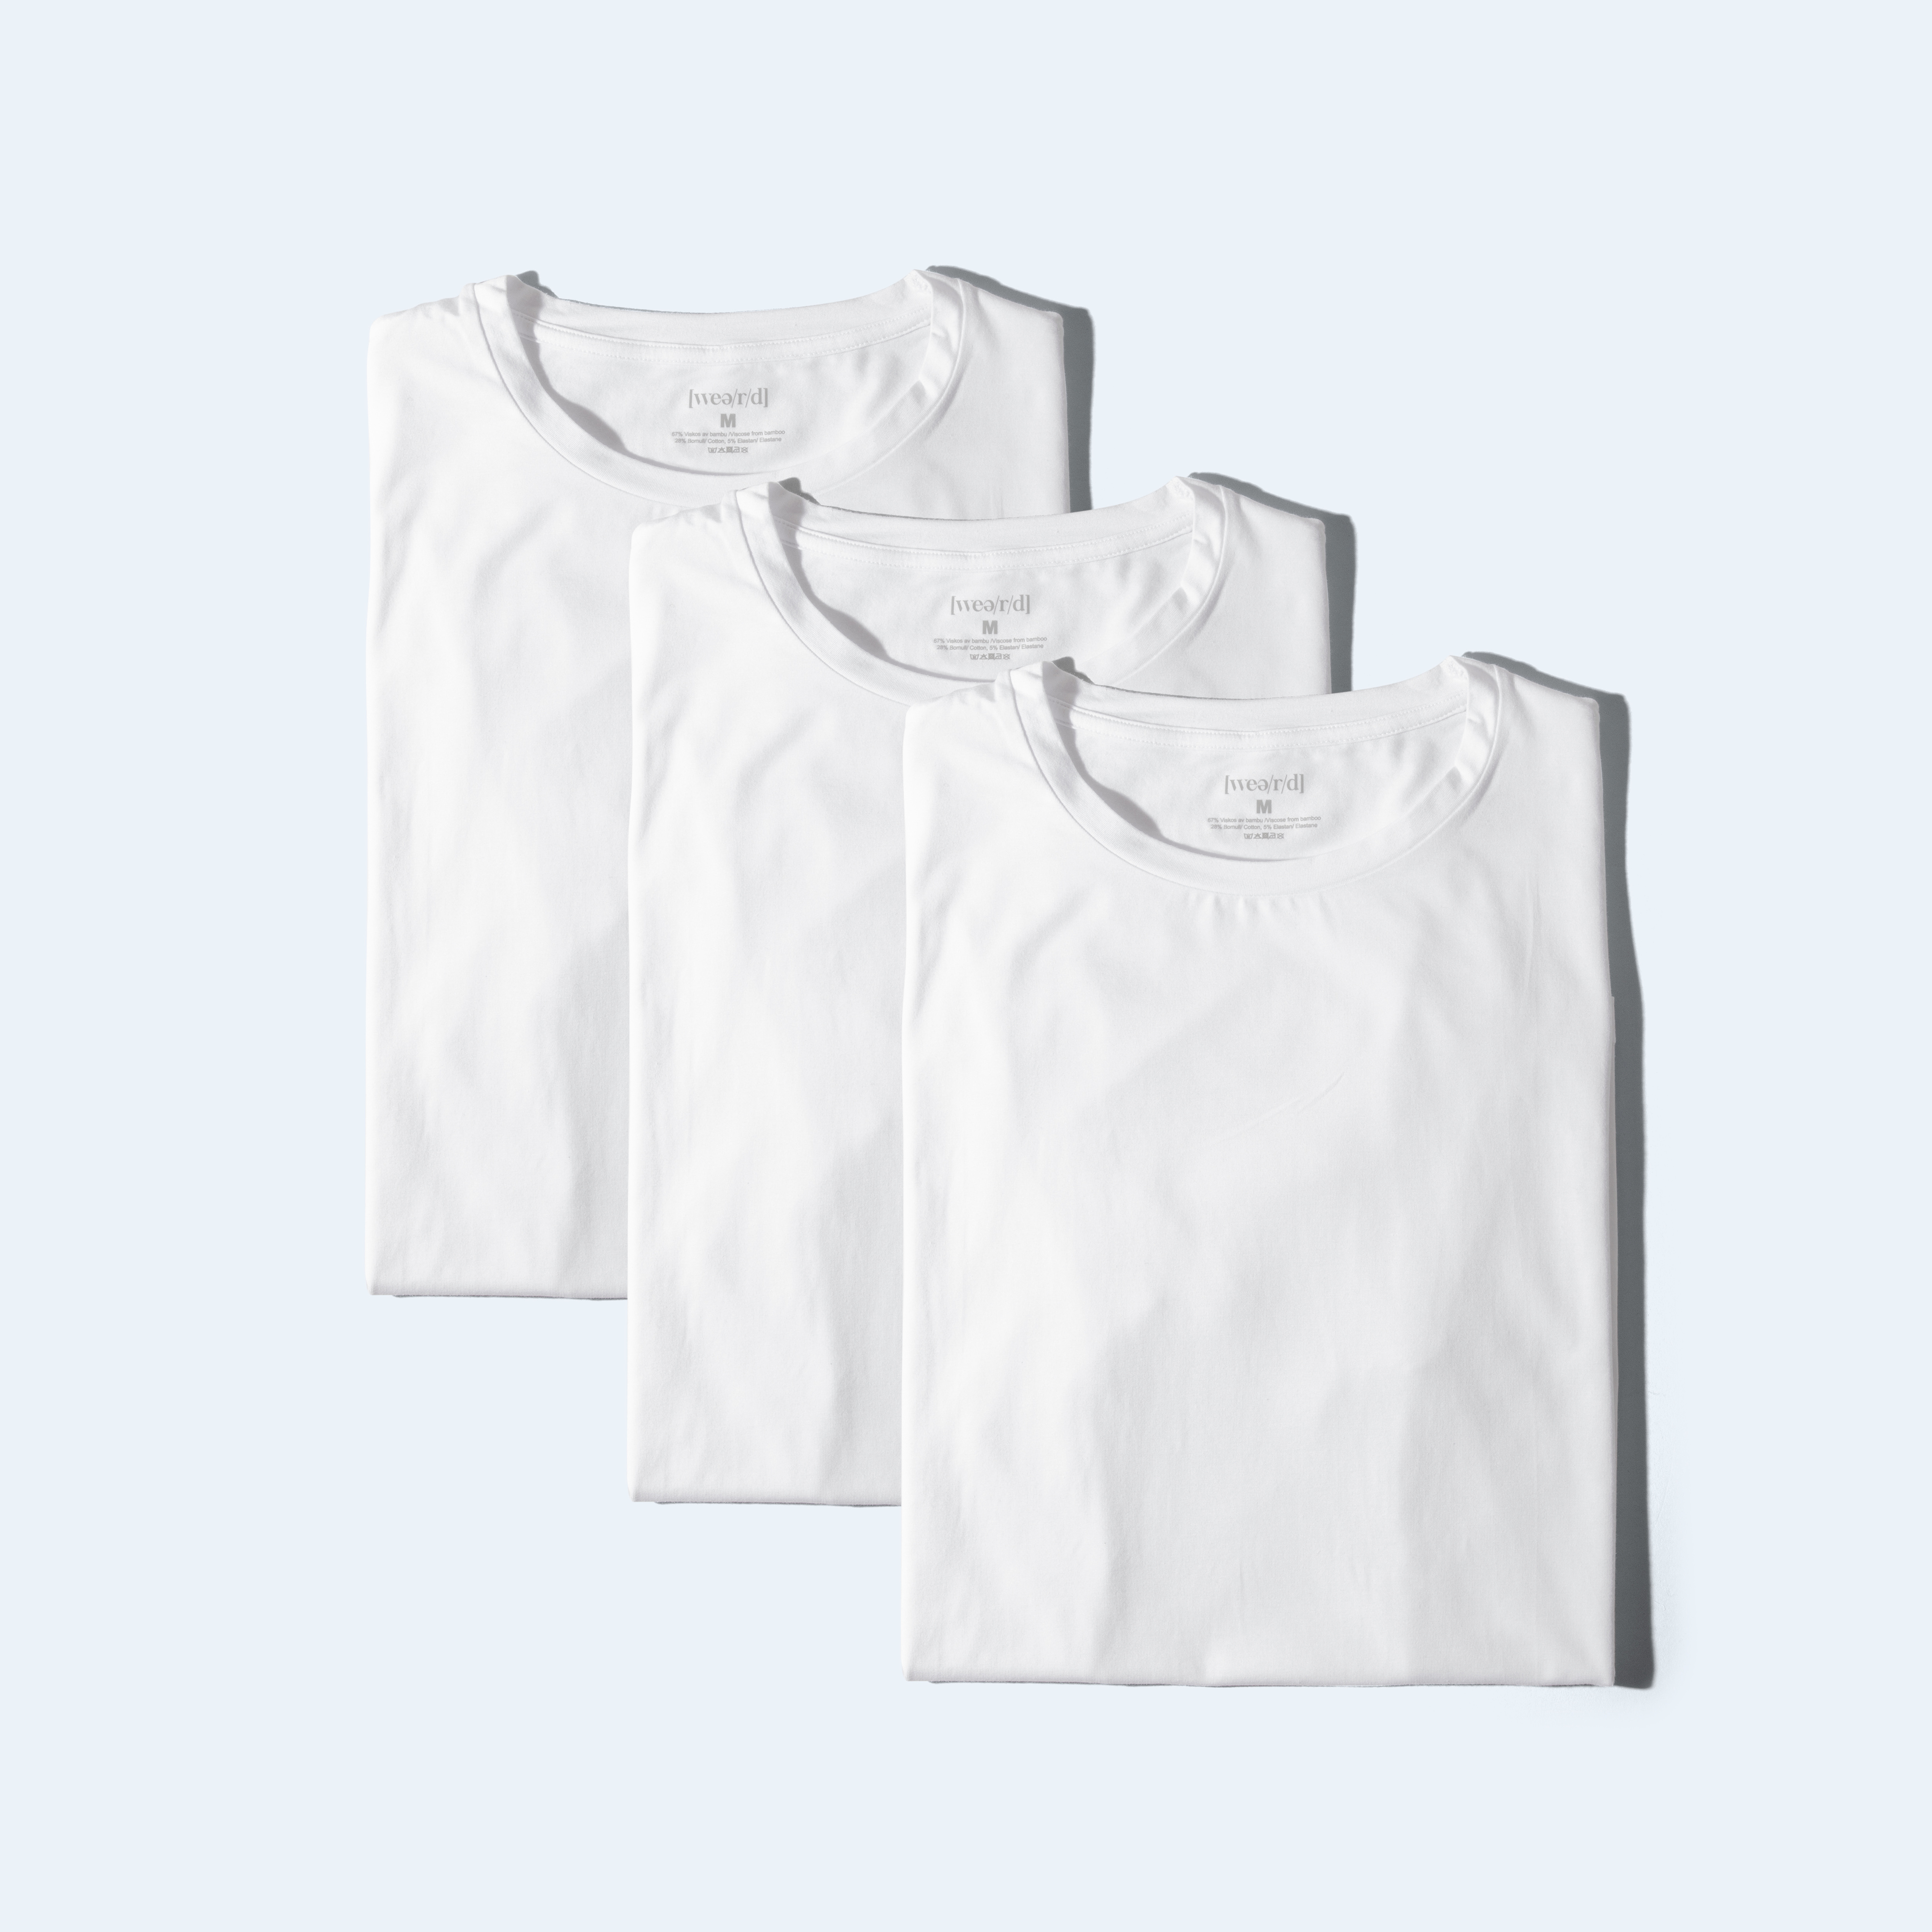 Awesome T-shirt [3 pcs - crew neck] - white